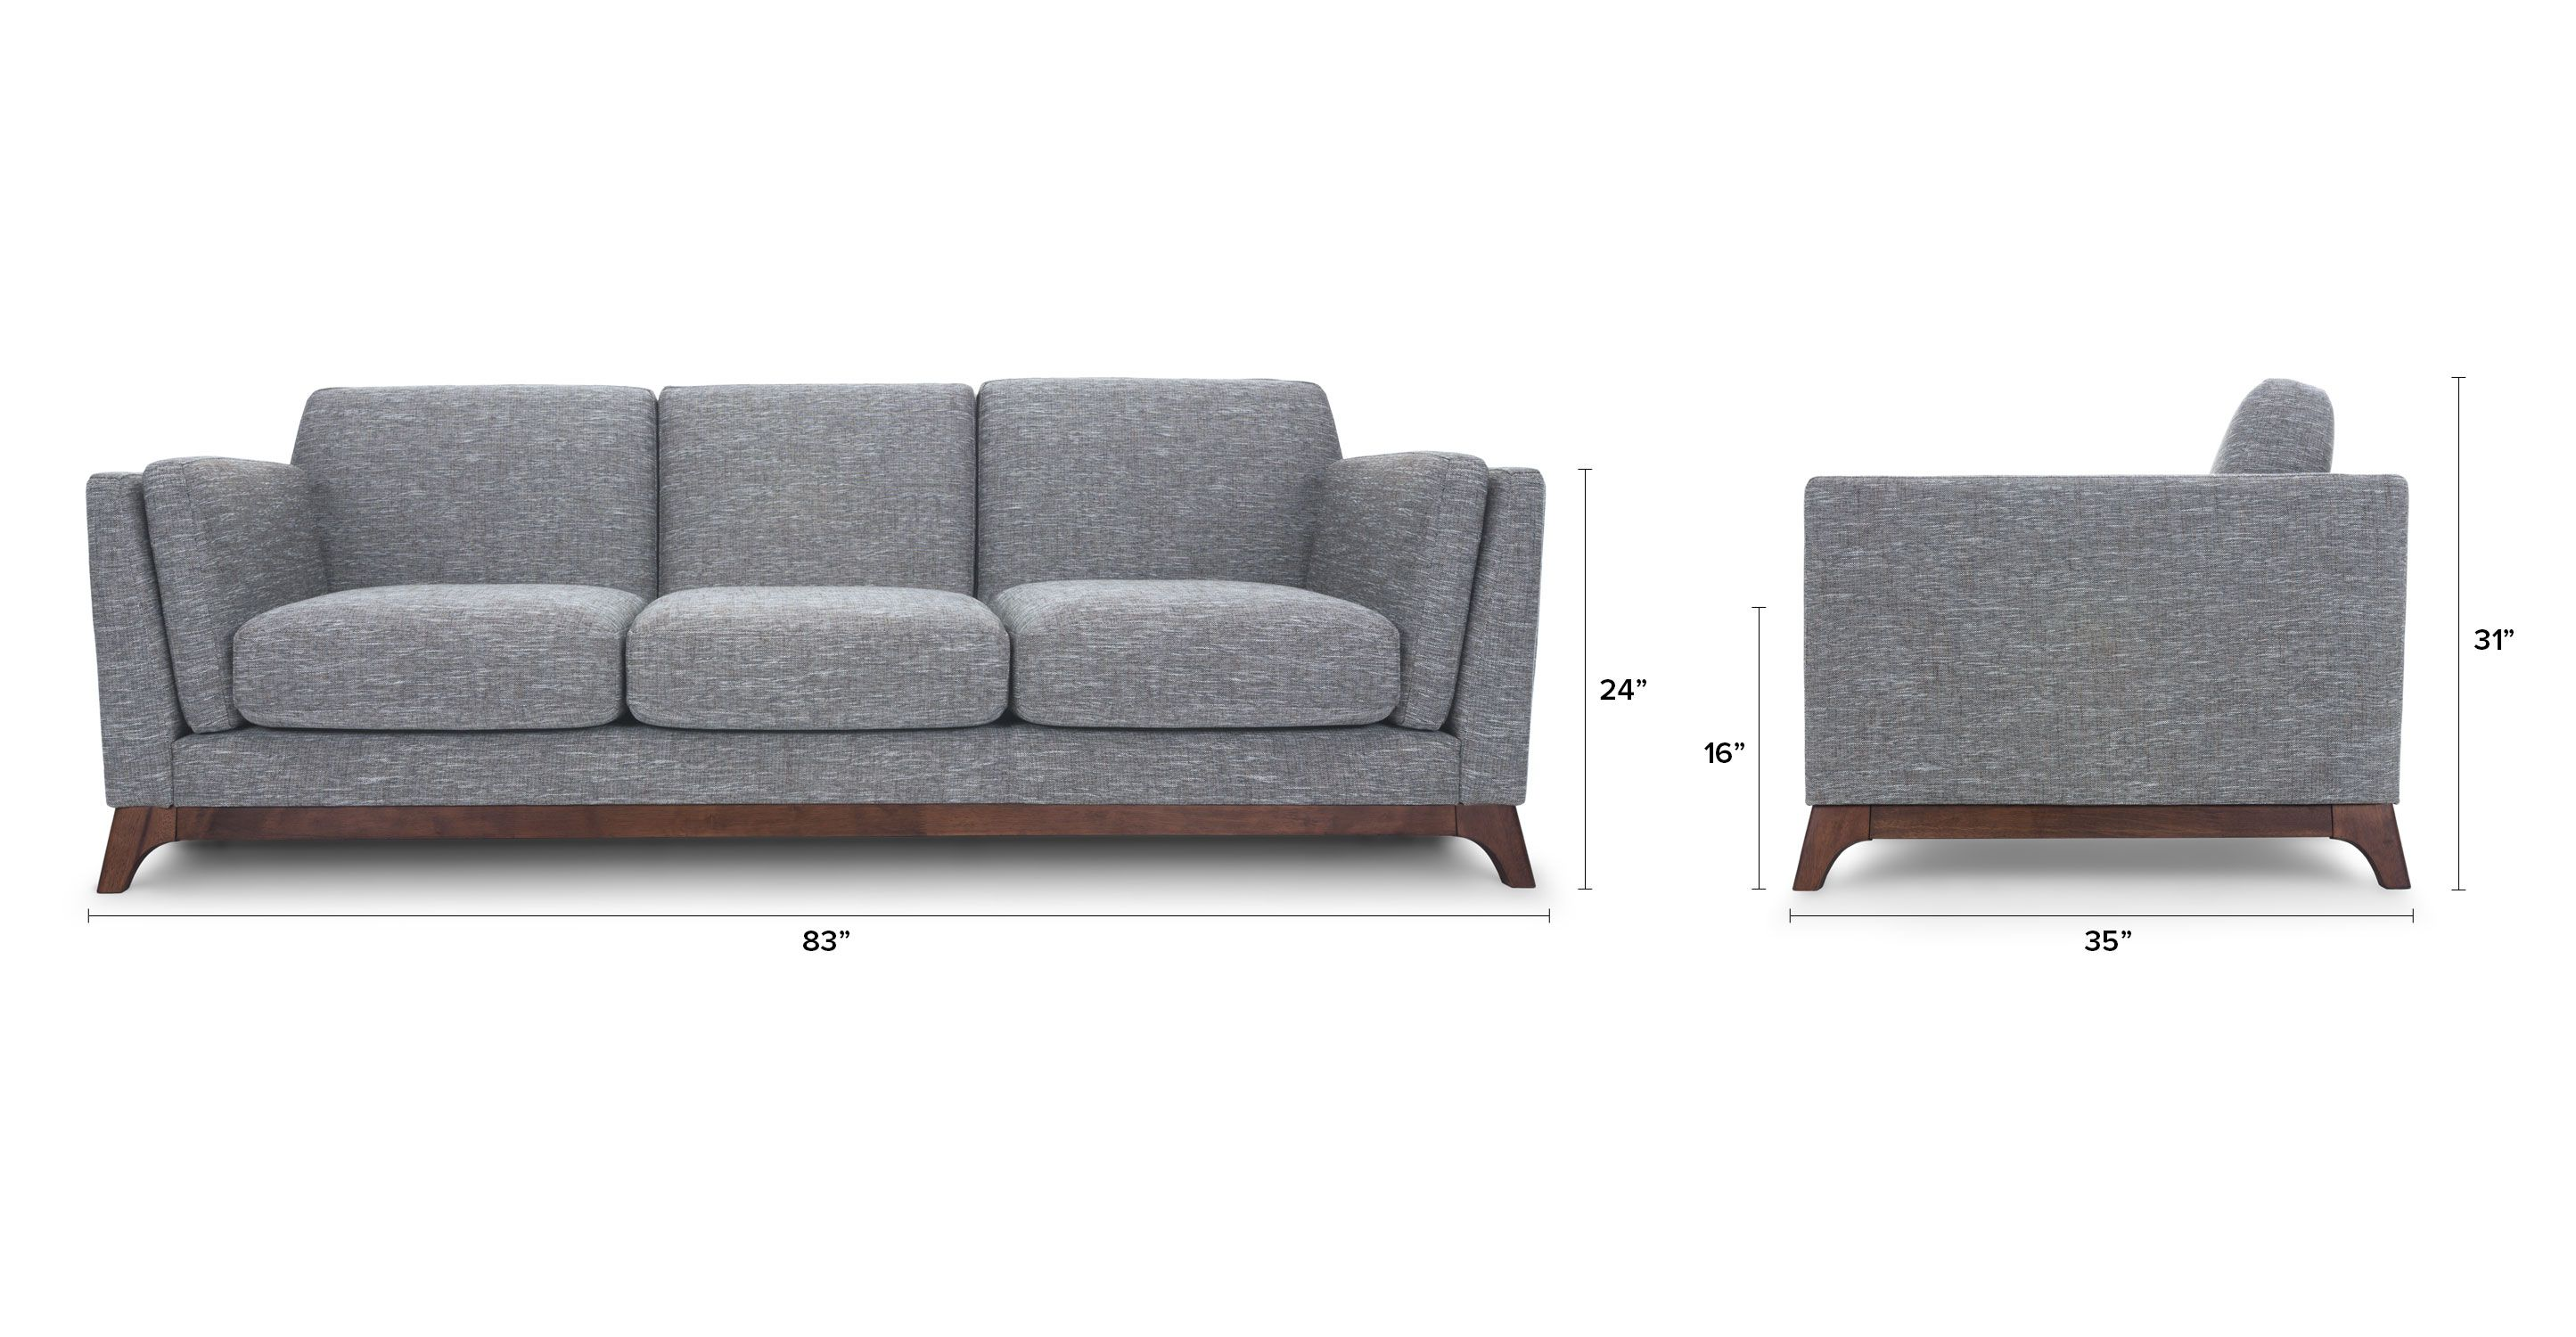 Ceni Volcanic Gray Sofa Sofas Article Modern Mid Century And Scandinavian Furniture